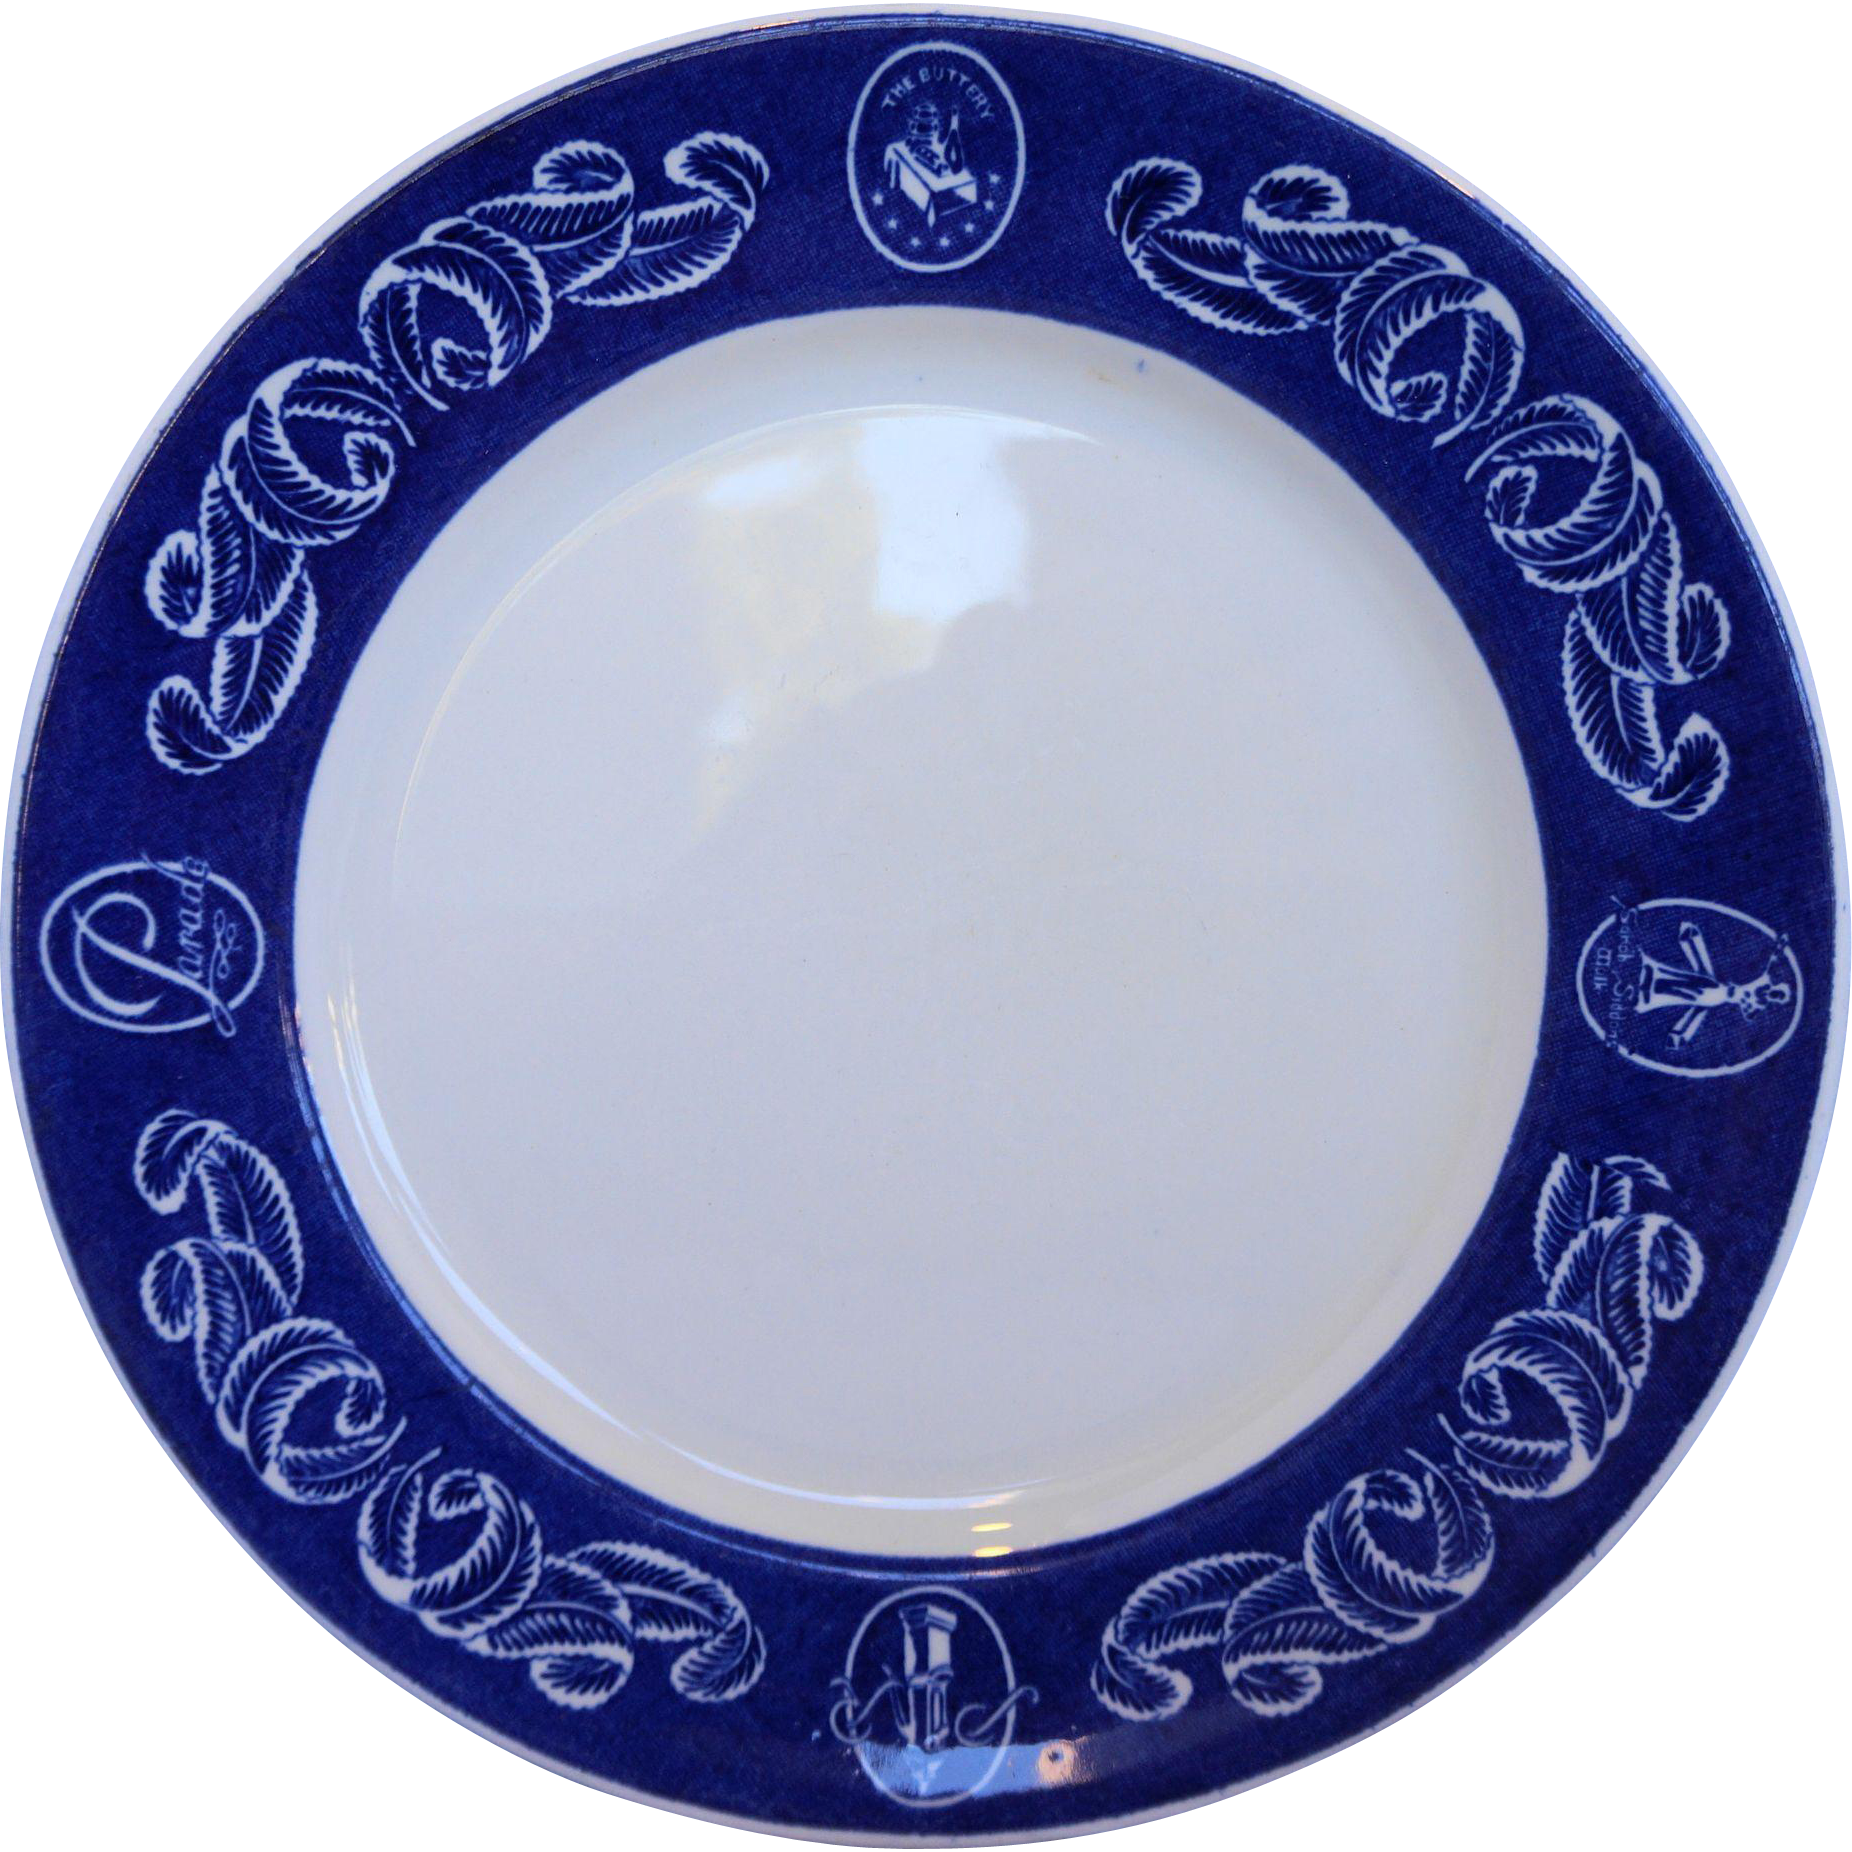 Grindley Ambassador Hotel Chicago Dinner Plate Blue Rim Sarah Siddons The Buttery Parade Pump Room